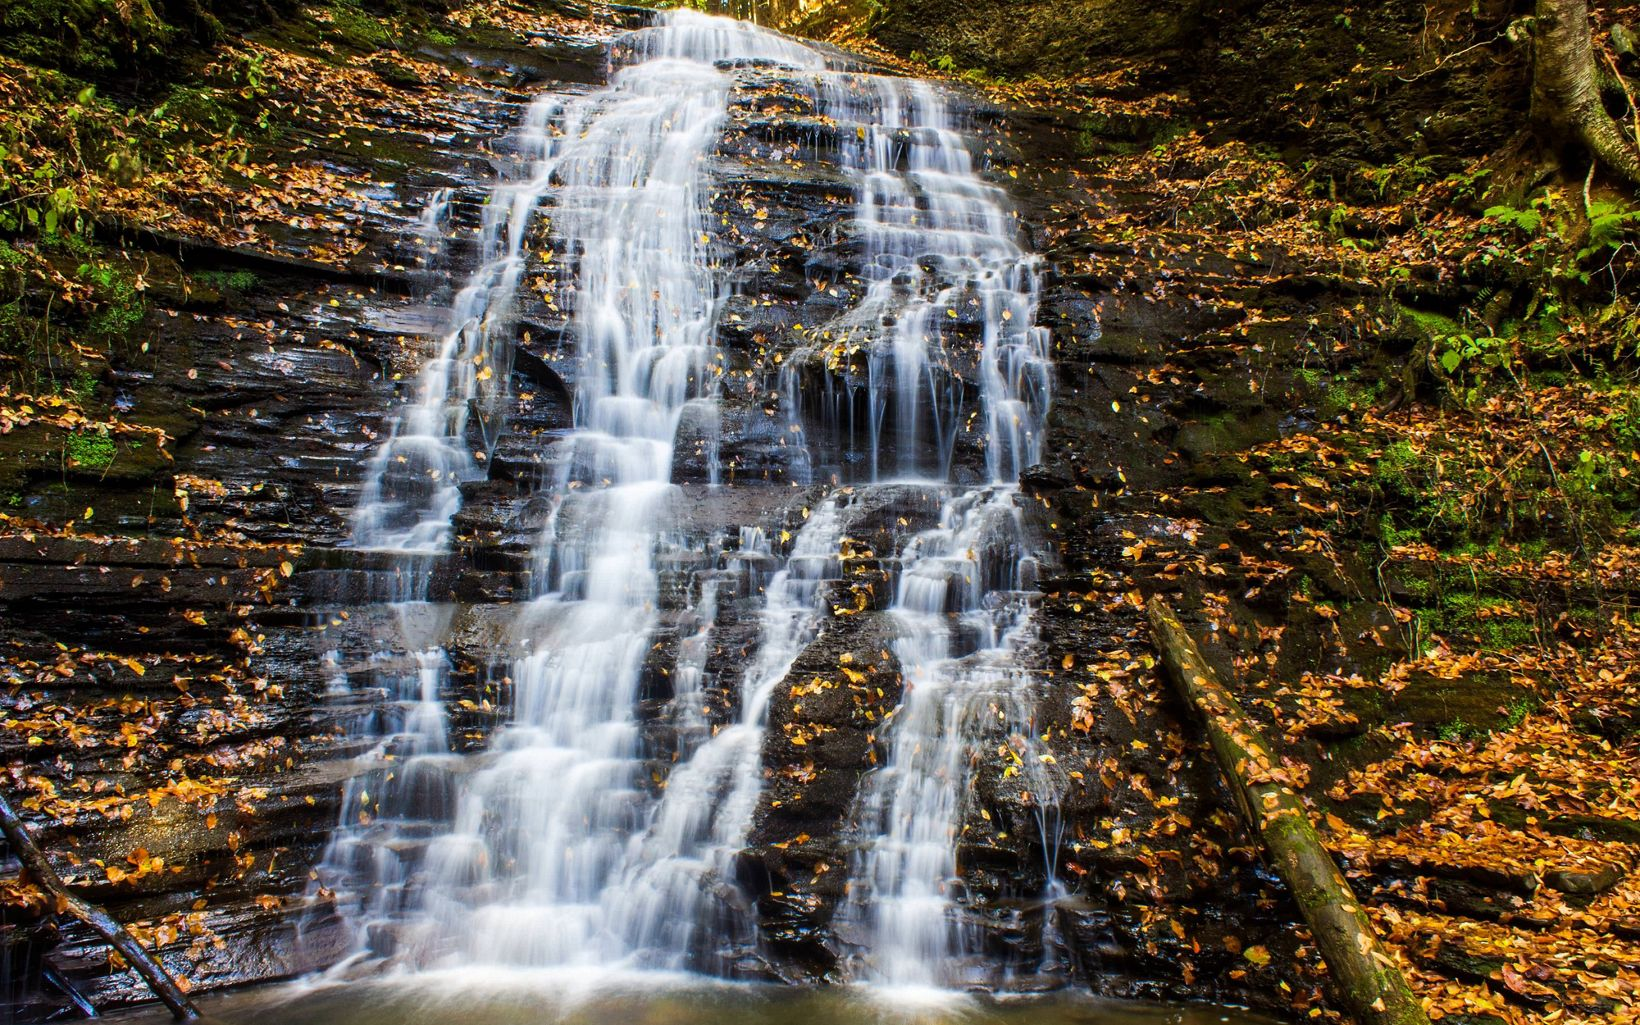 Fall view of waterfall with orange leaves on surrounding rocks.